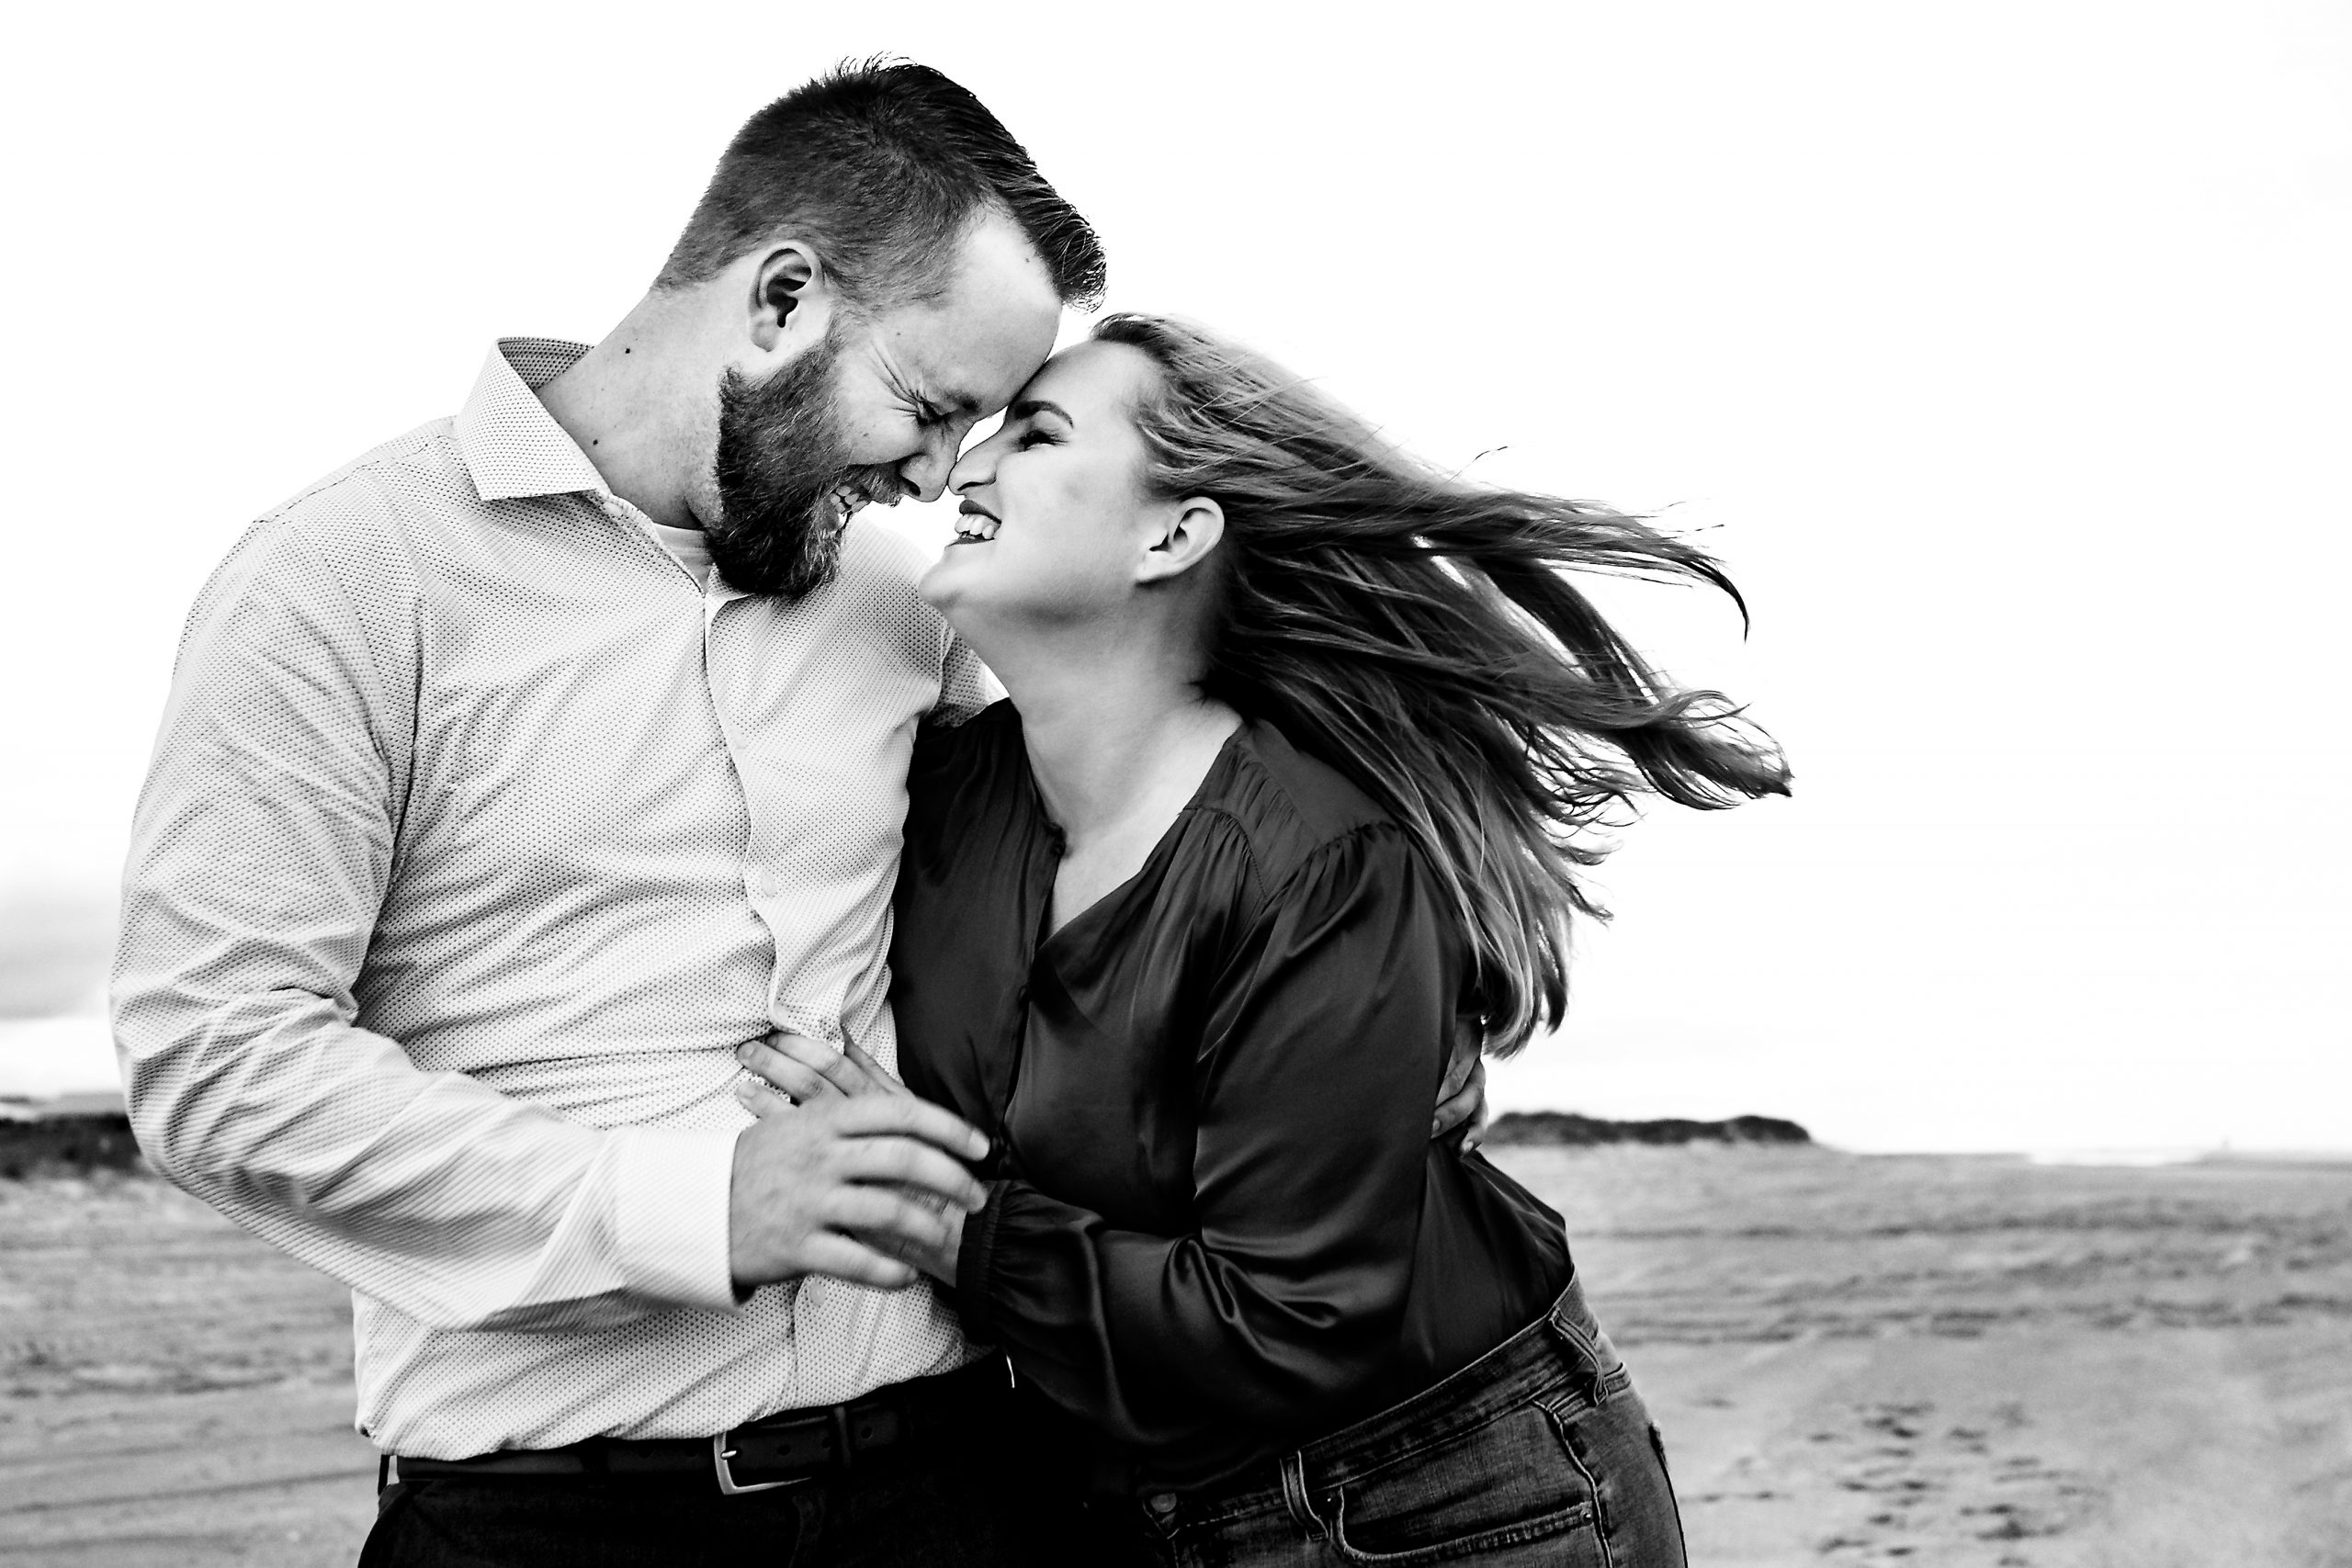 Couple look into each other's eyes on Emerald Isle beach.